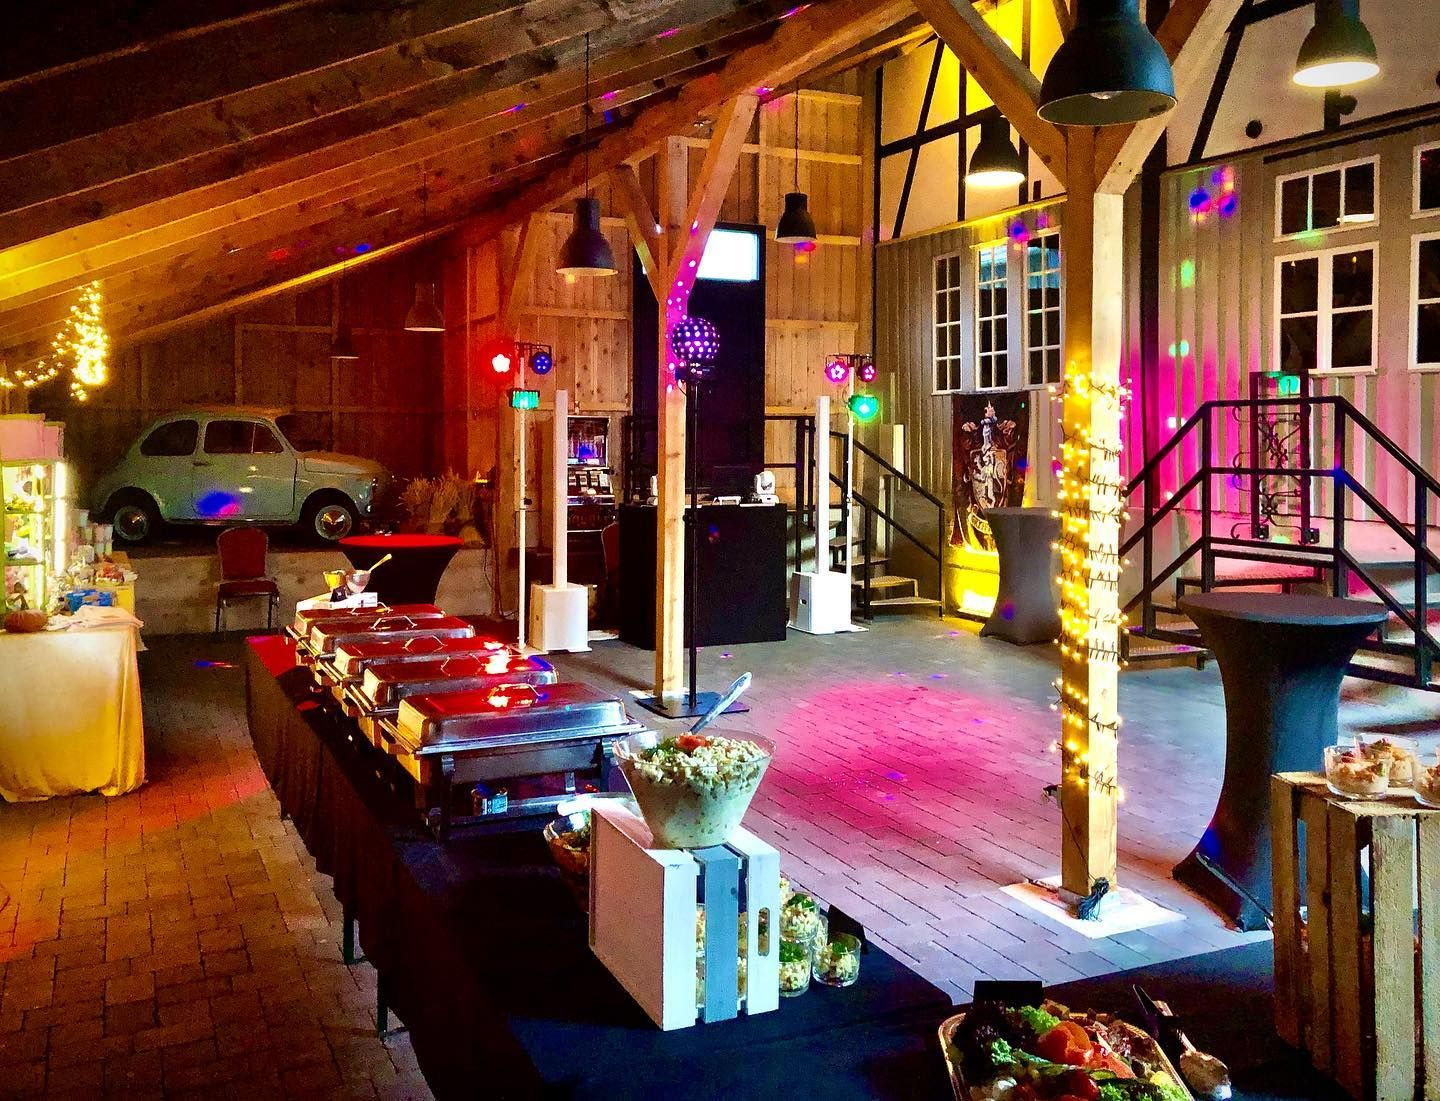 Hochzeitdj Djnrw Beatpoet Eventdj Weddingkoln Joeykelly Weddingnrw Refrath Lohmar Djlife Hochzeit202 In 2020 Fair Grounds Fun Slide Fun